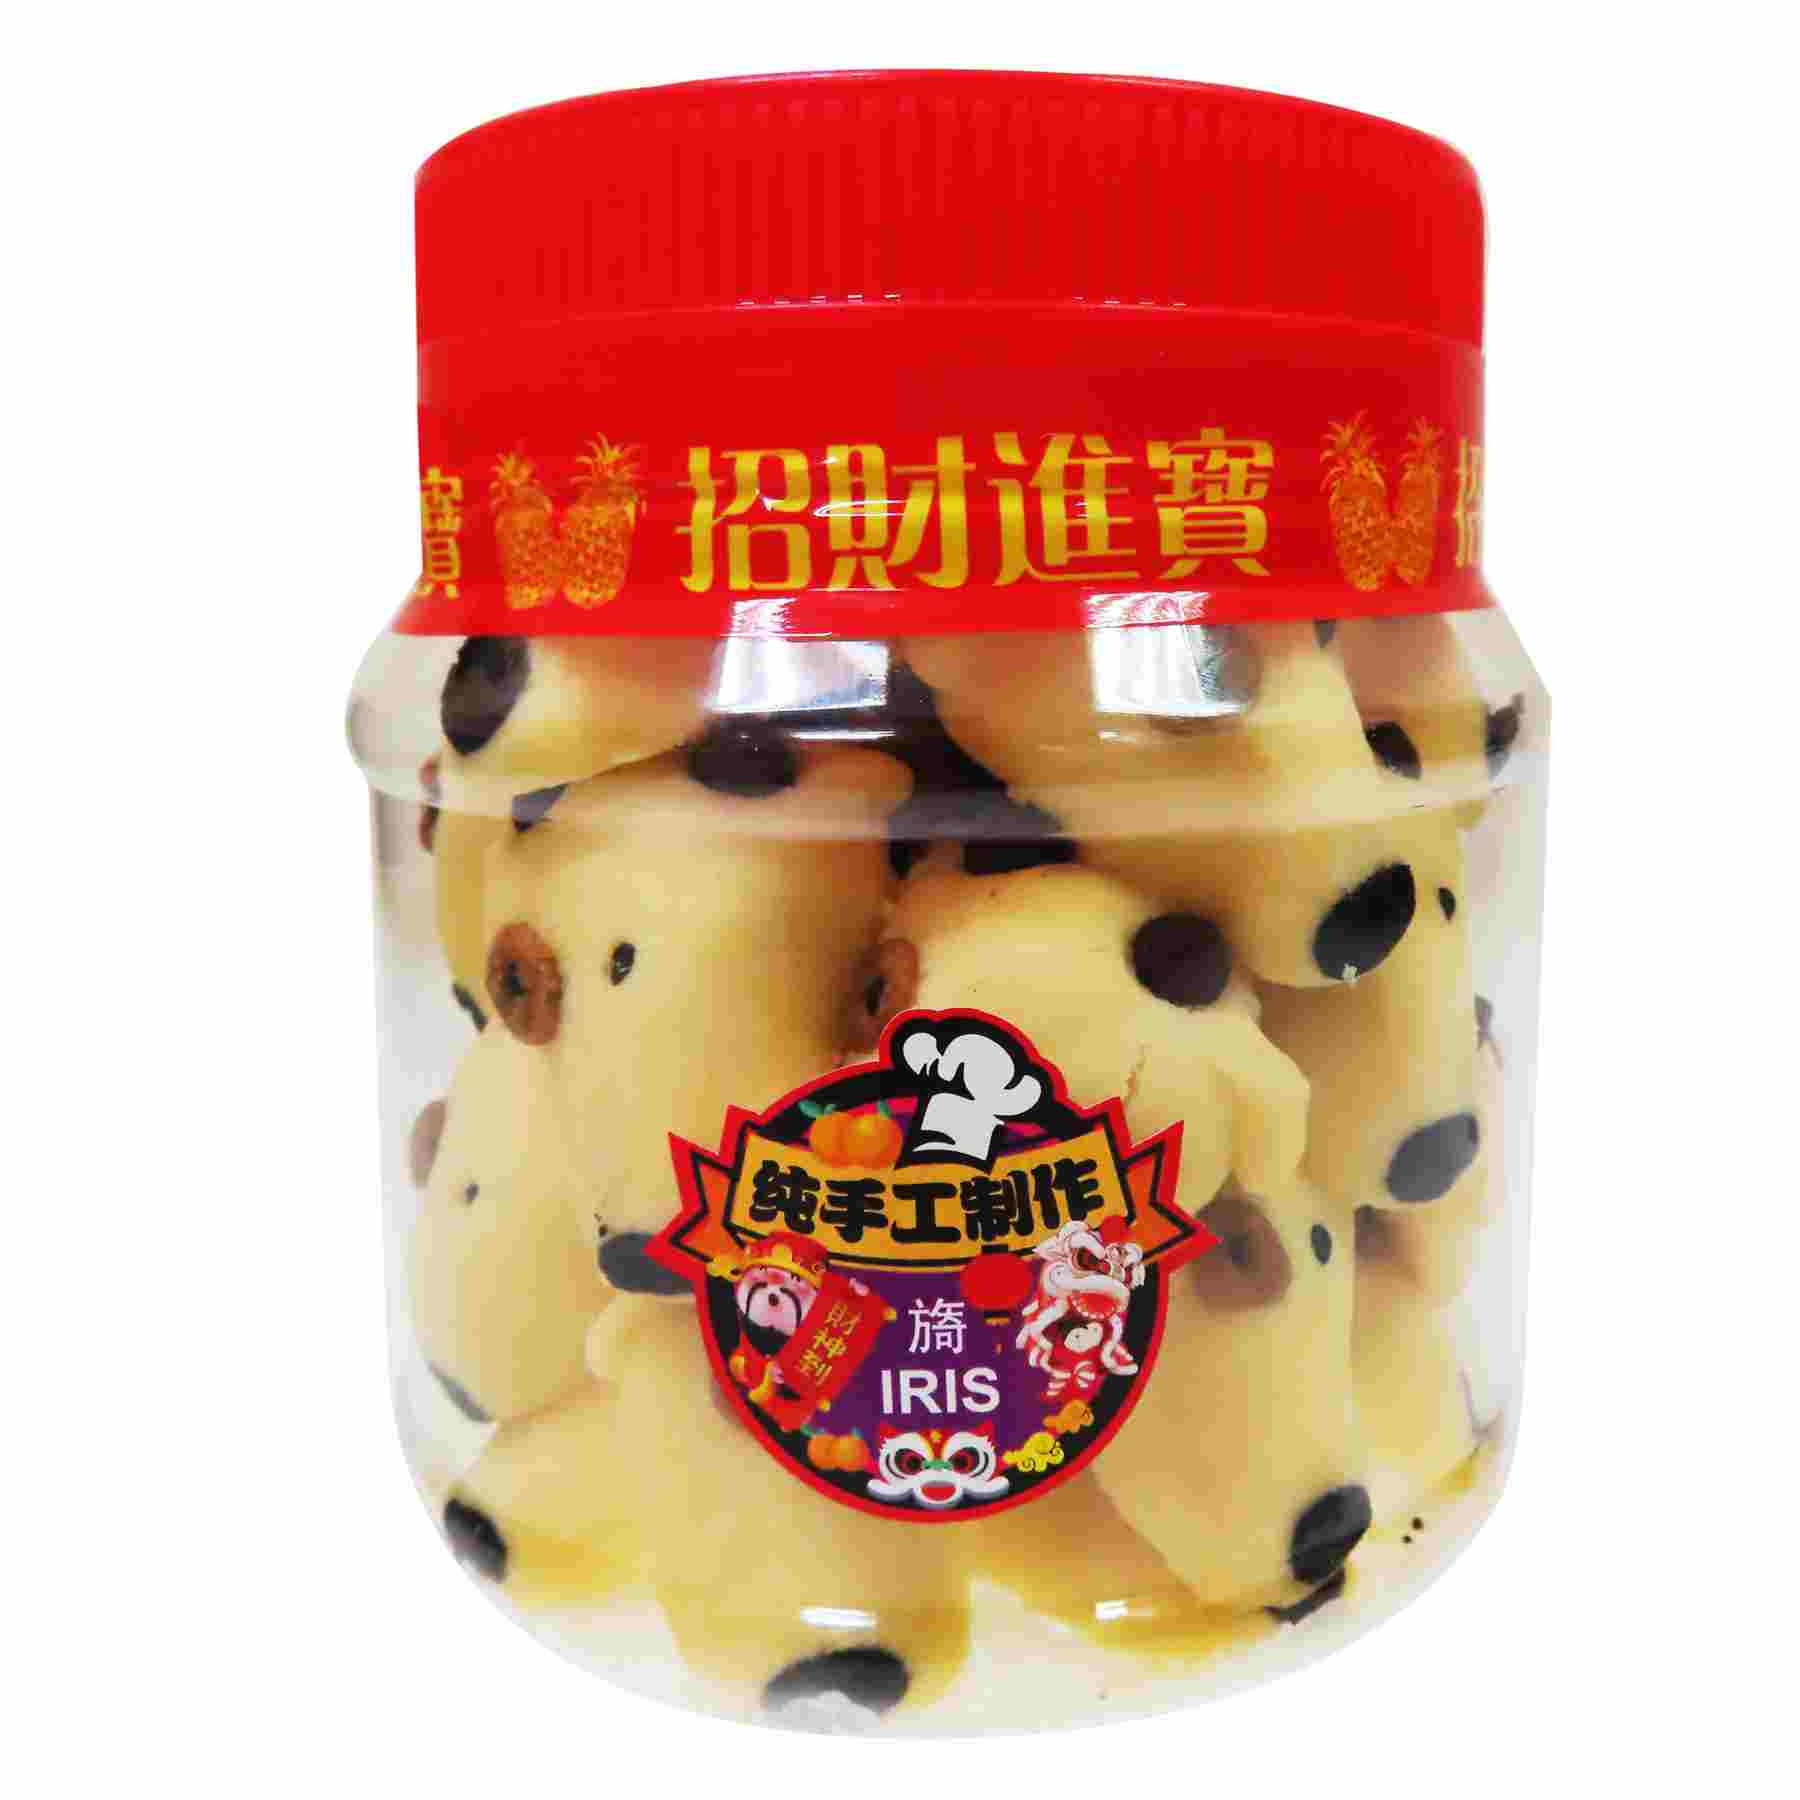 Image CNY Homemade Cookies 纯手工牛饼(十二生肖)380g